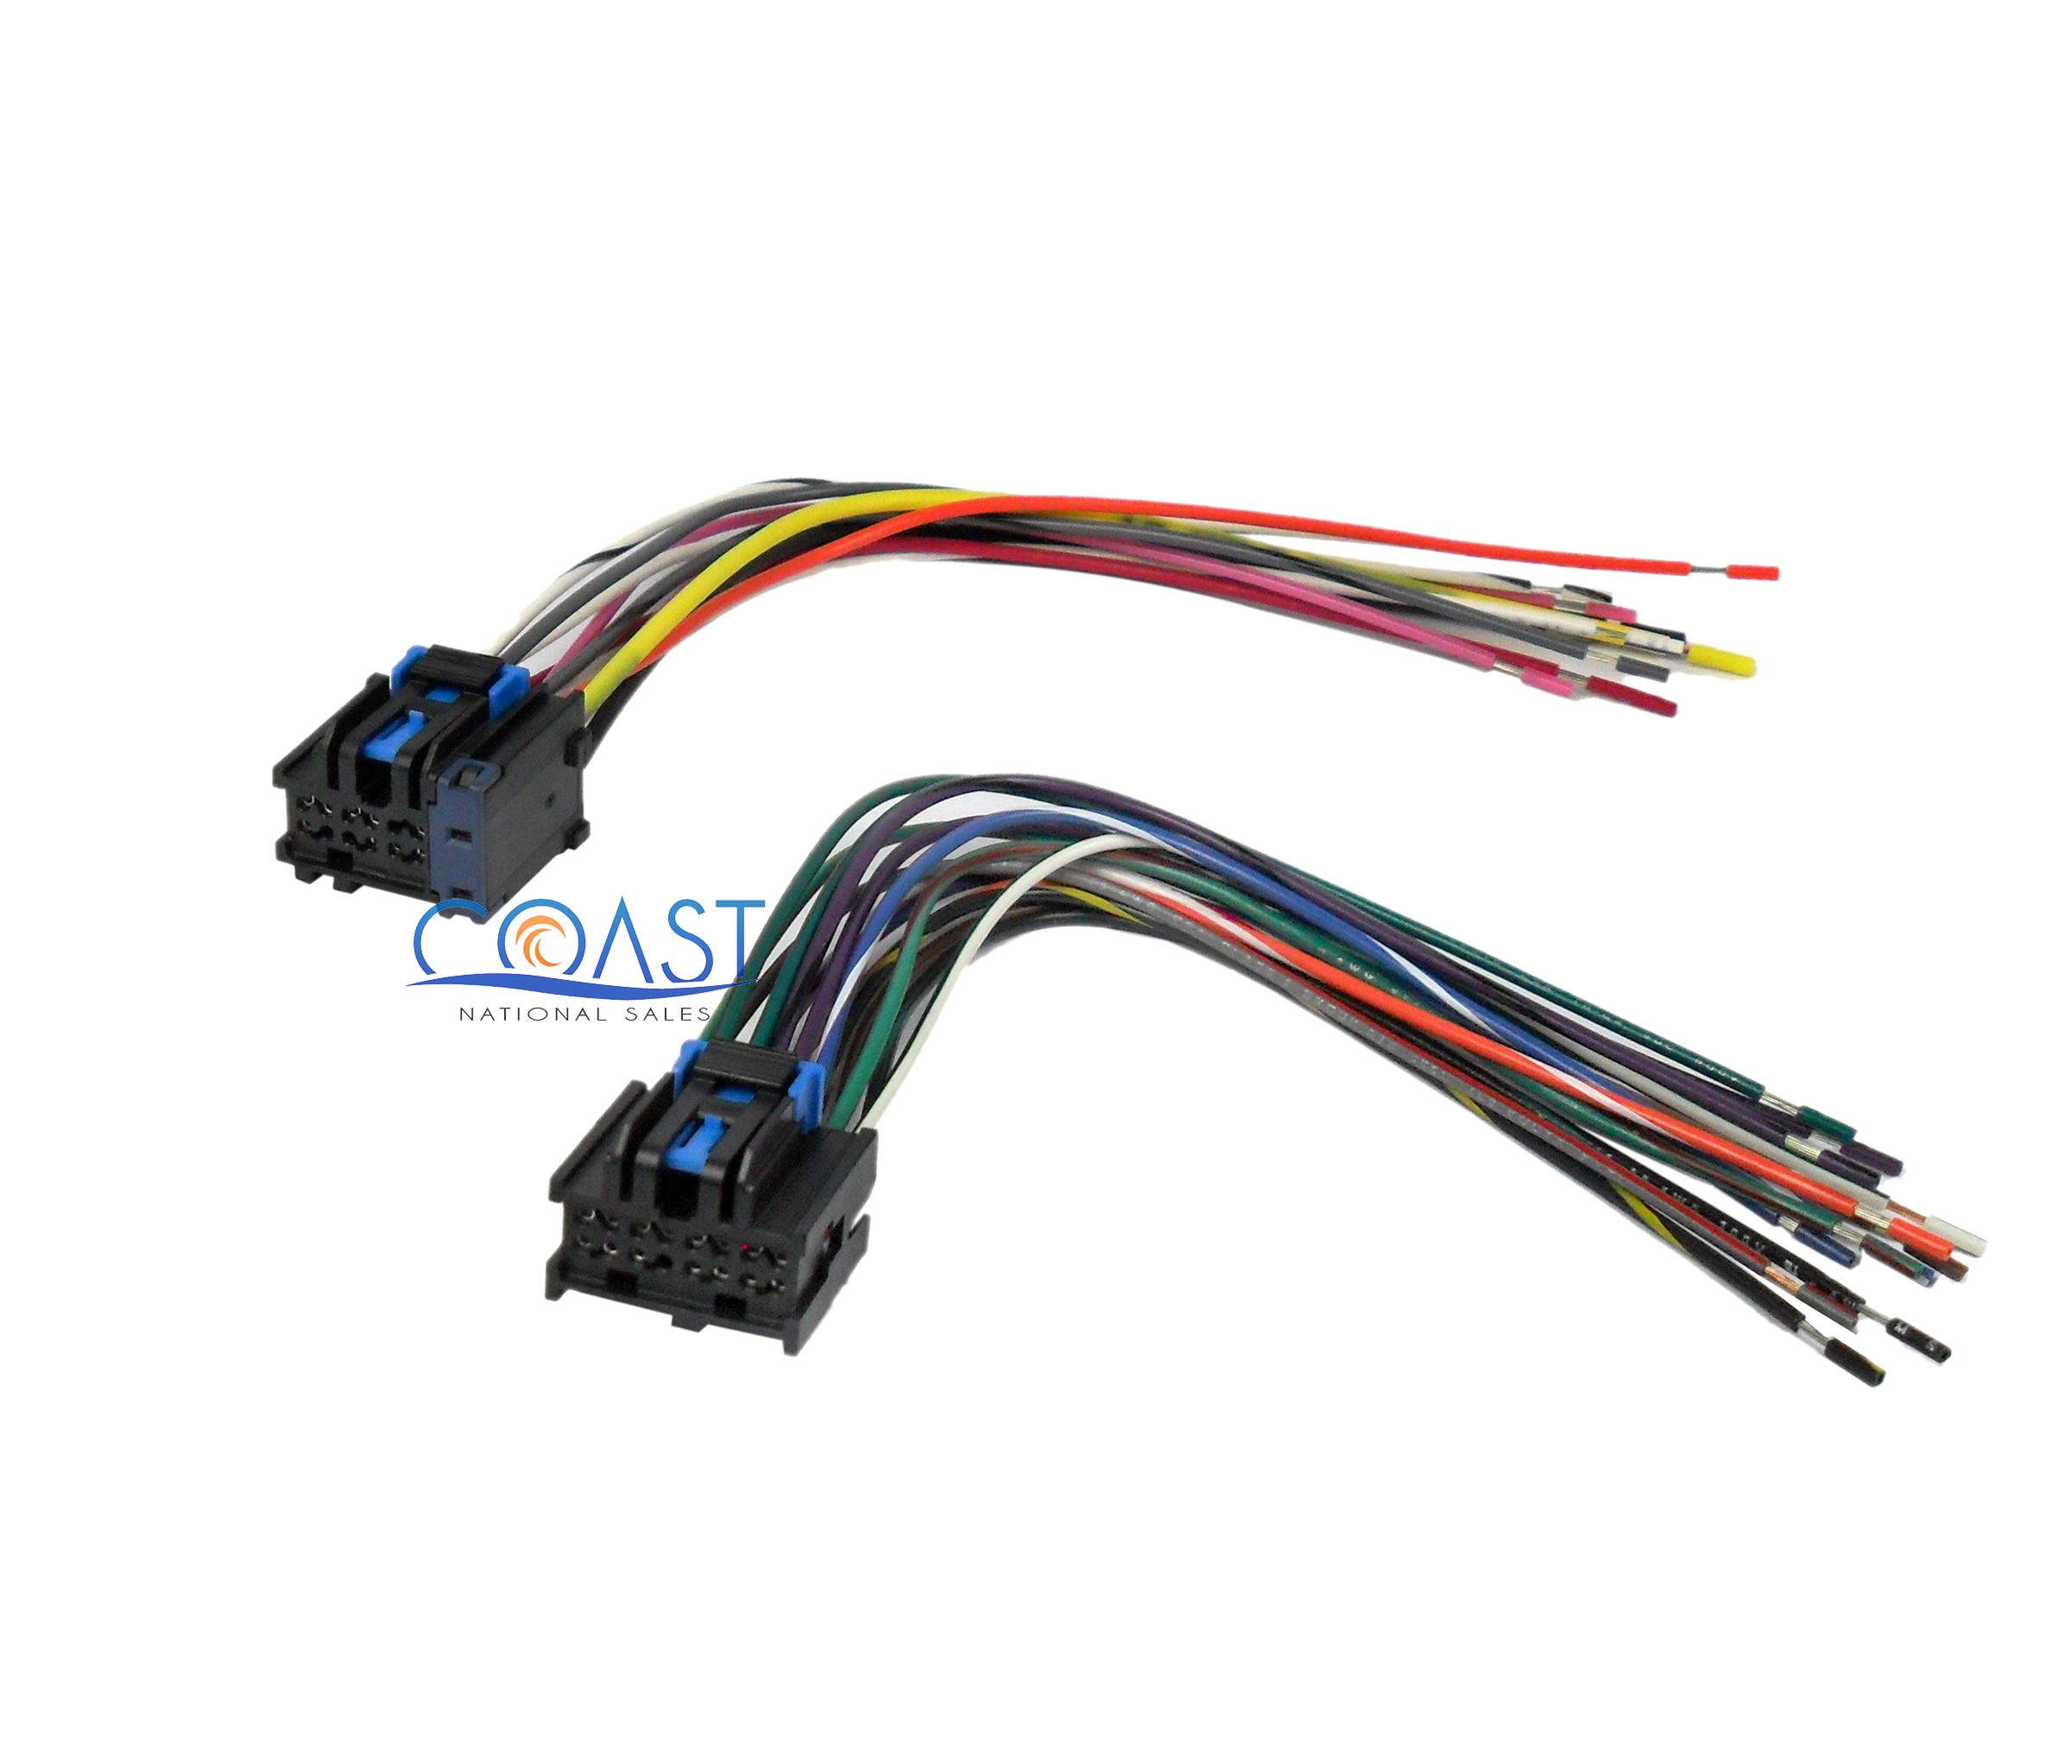 2006 Saturn Ion Wiring Harness - Wiring Diagram G11 on honda accord wiring harness, mazda 3 wiring harness, volkswagen type 3 wiring harness, mercury sable wiring harness, saturn vue wiring harness, toyota tundra wiring harness, toyota tacoma wiring harness, kia spectra wiring harness, saturn ion radio harness, chevy cobalt wiring harness, amc amx wiring harness, chevy aveo wiring harness, dodge dart wiring harness, hummer h2 wiring harness, honda ridgeline wiring harness, saturn radio wiring harness, dodge durango wiring harness, suzuki kizashi wiring harness, infiniti g35 wiring harness, saab 900 wiring harness,